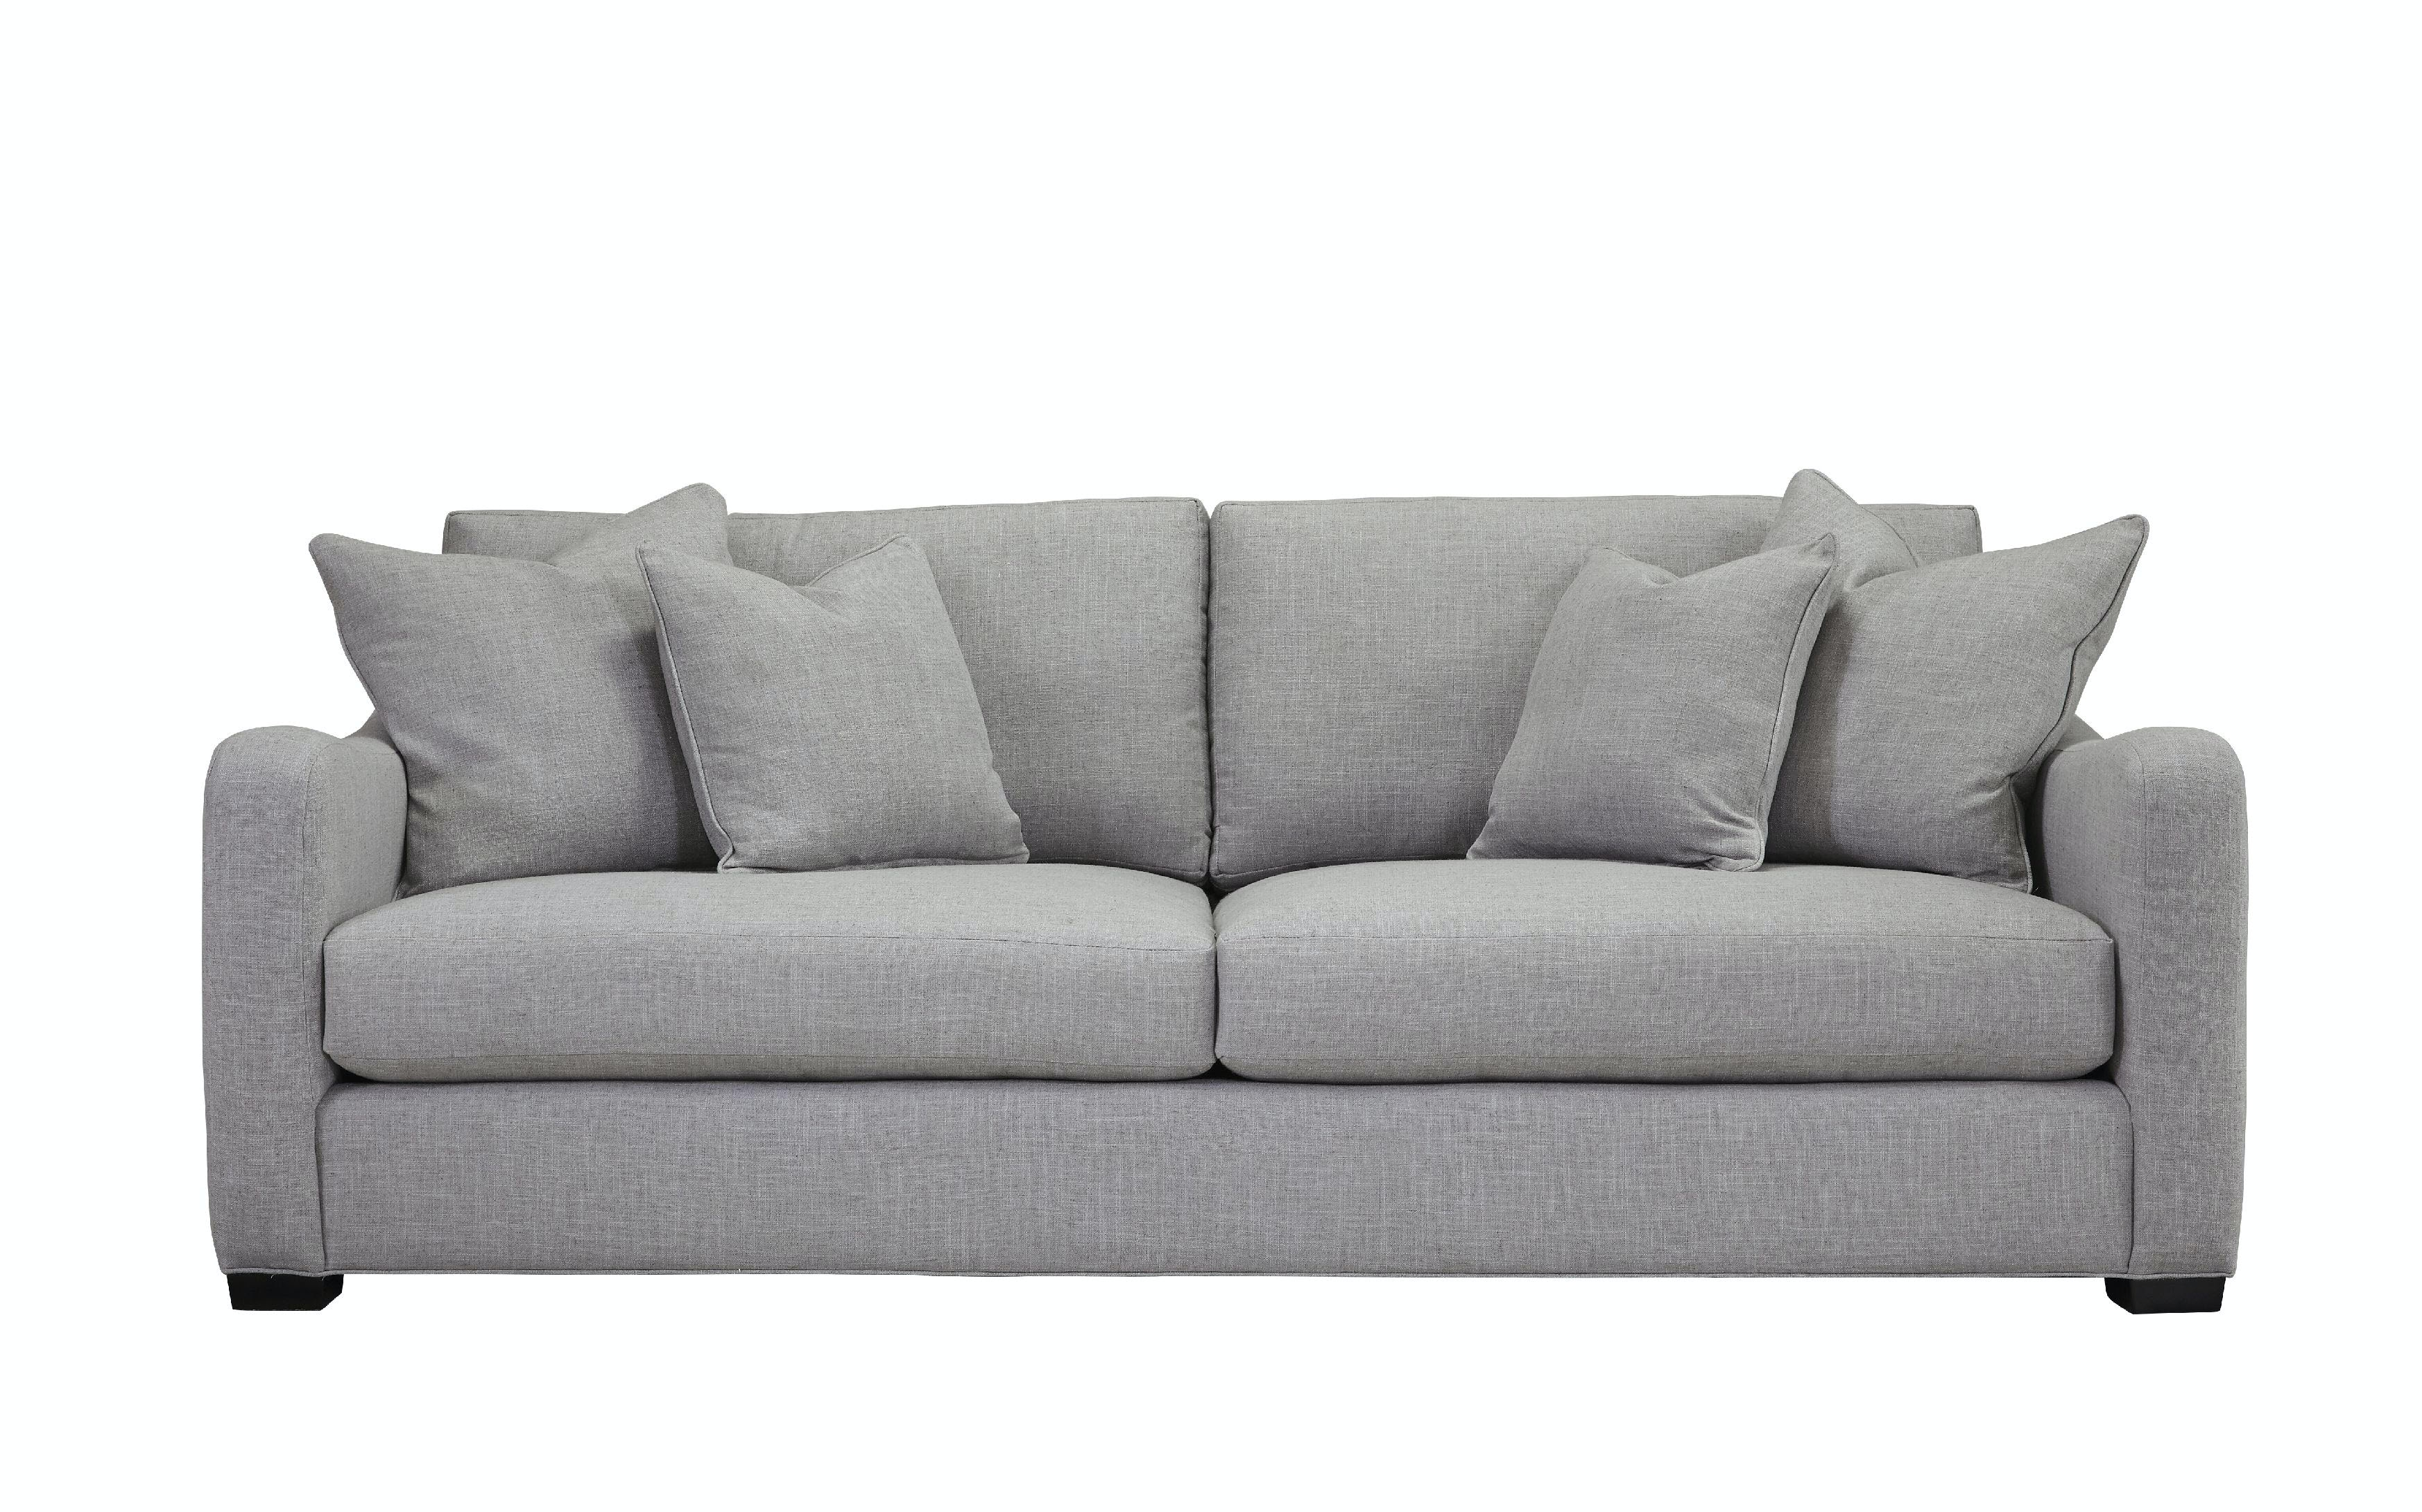 Southern Furniture Living Room Wiley Sofa 40961 Hickory Furniture